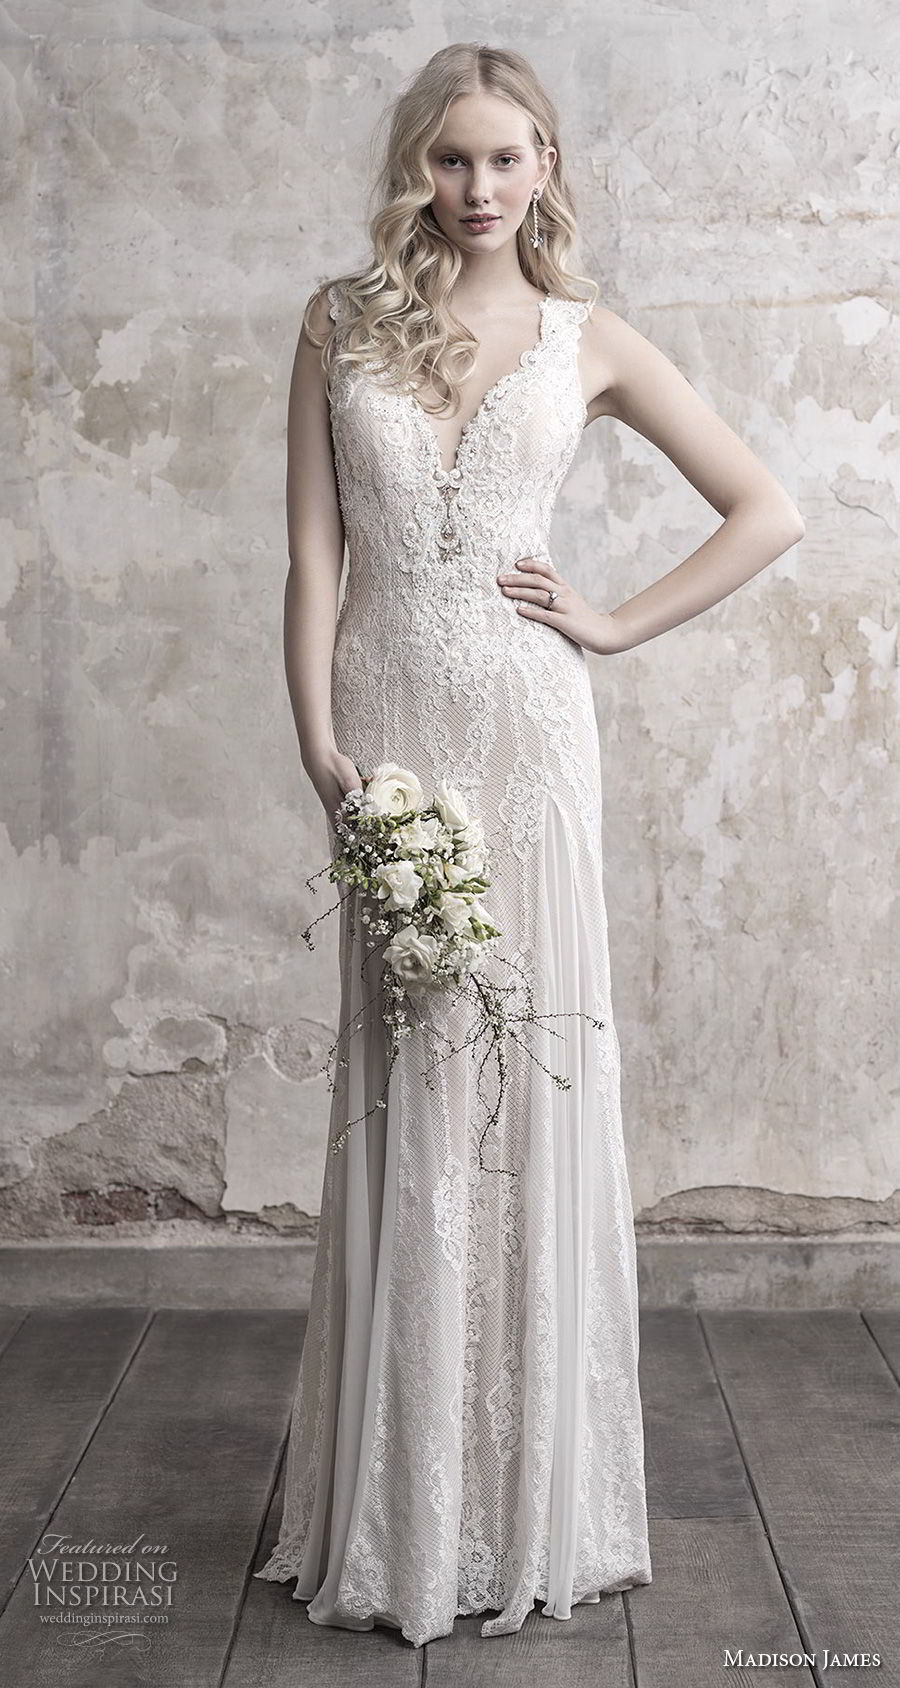 madison james fall 2018 bridal sleeveless thick strap deep sweetheart neckline elegant sheath wedding dress sheer button back chapel train (15) mv